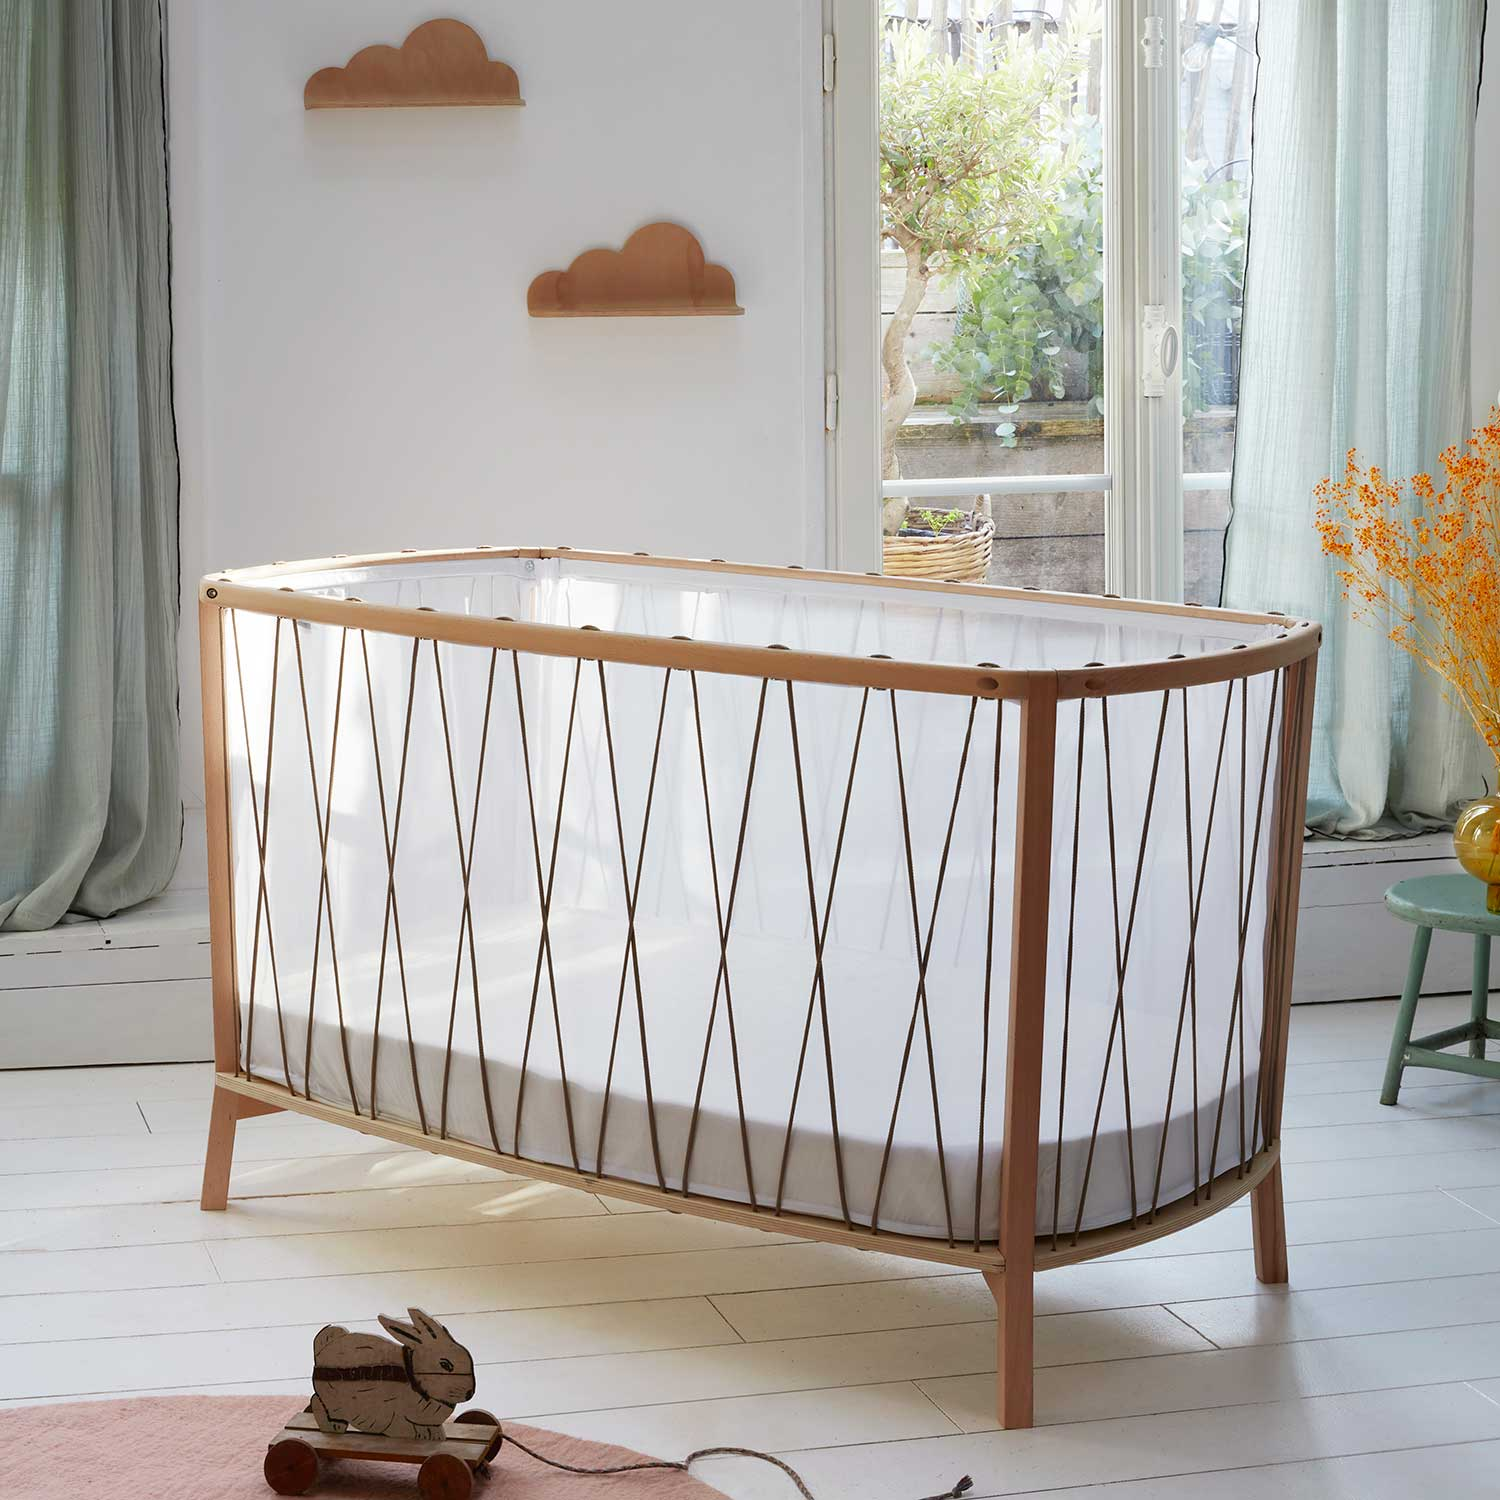 Charlie Crane Cot, the Kimi cot transforms as your baby grows